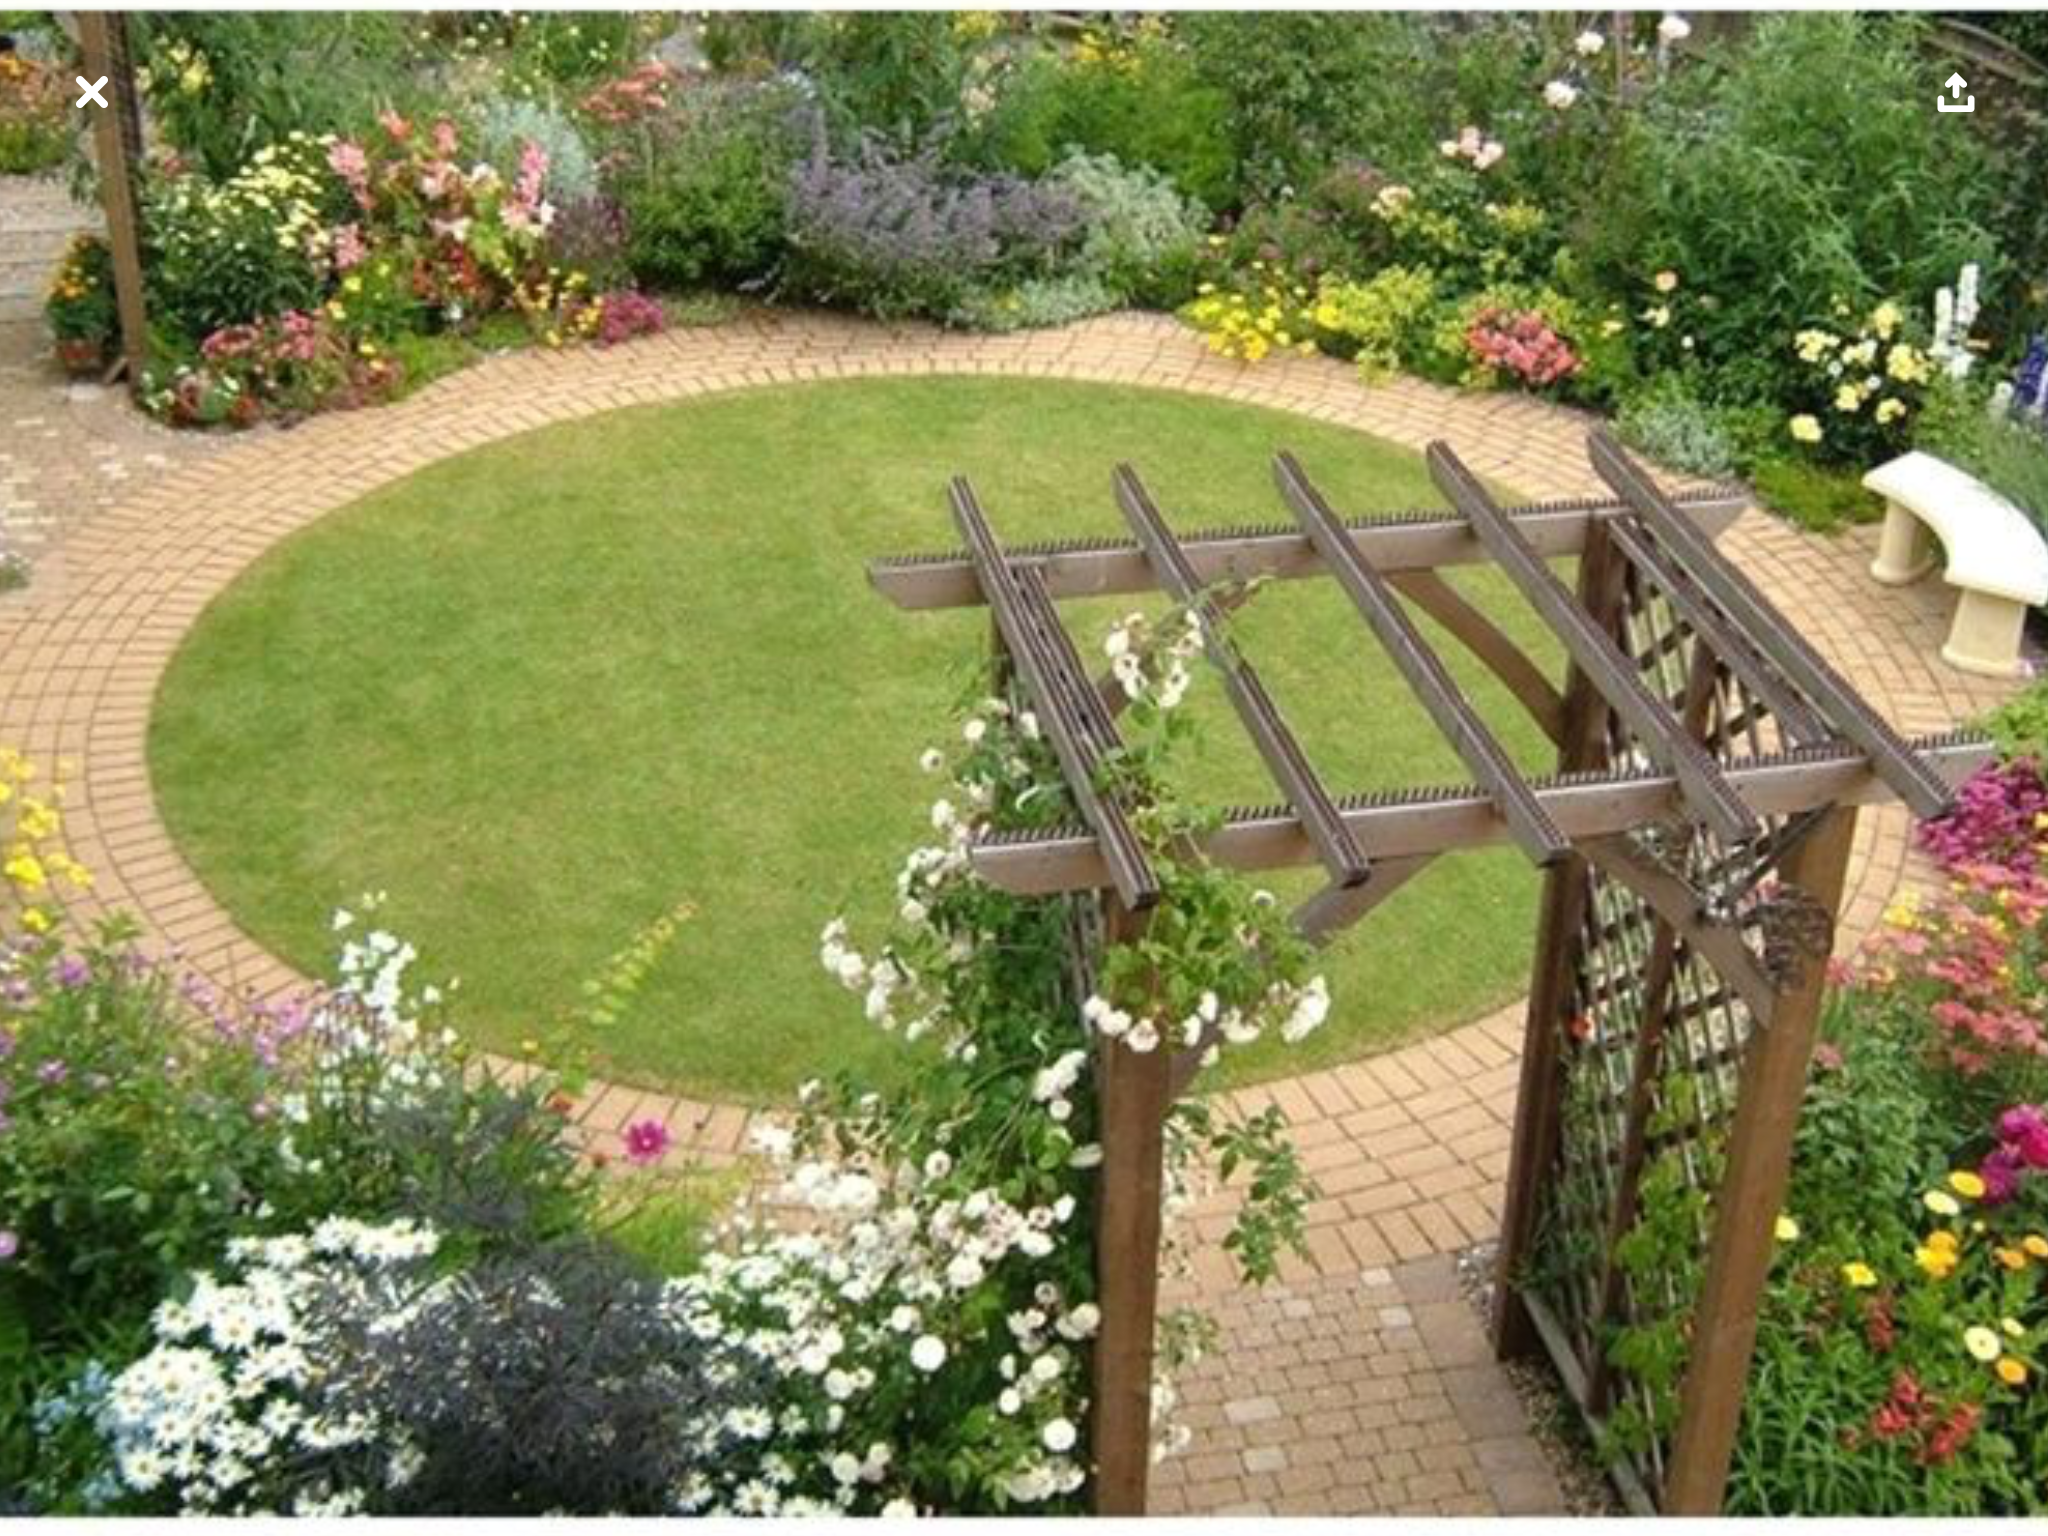 Pin By Bethodom On Yard Landscaping Circular Garden Design Front Garden Design Small Garden Design